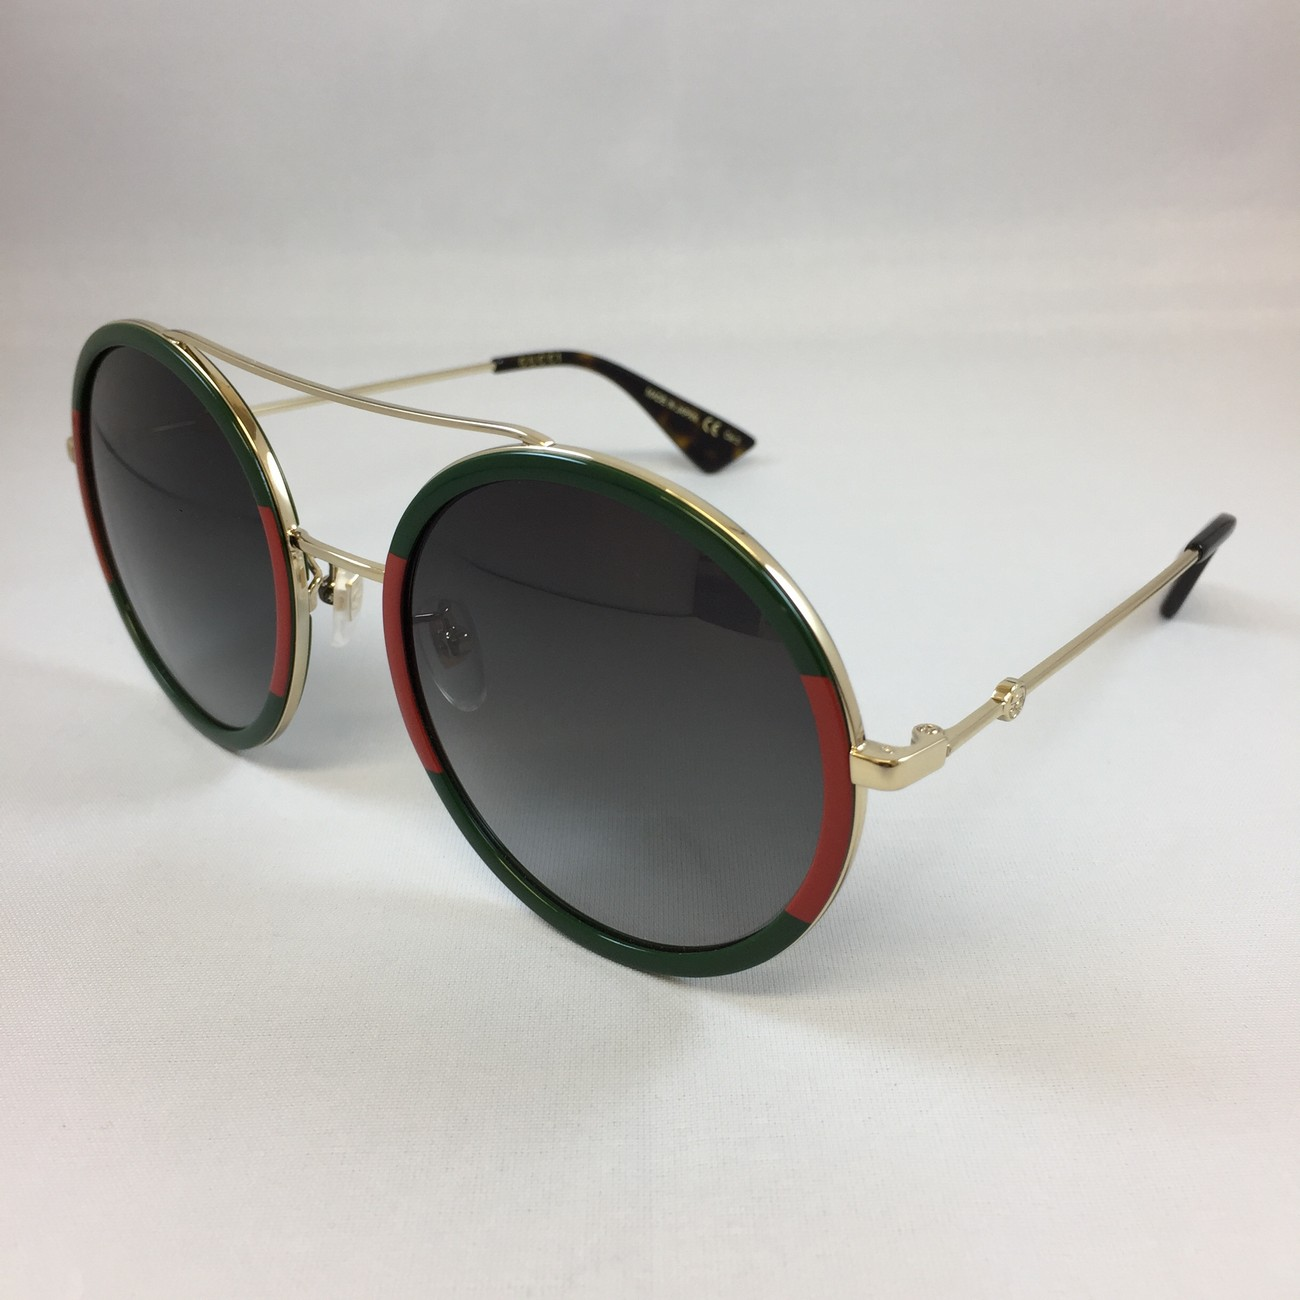 Gucci GG0061S 003 gold